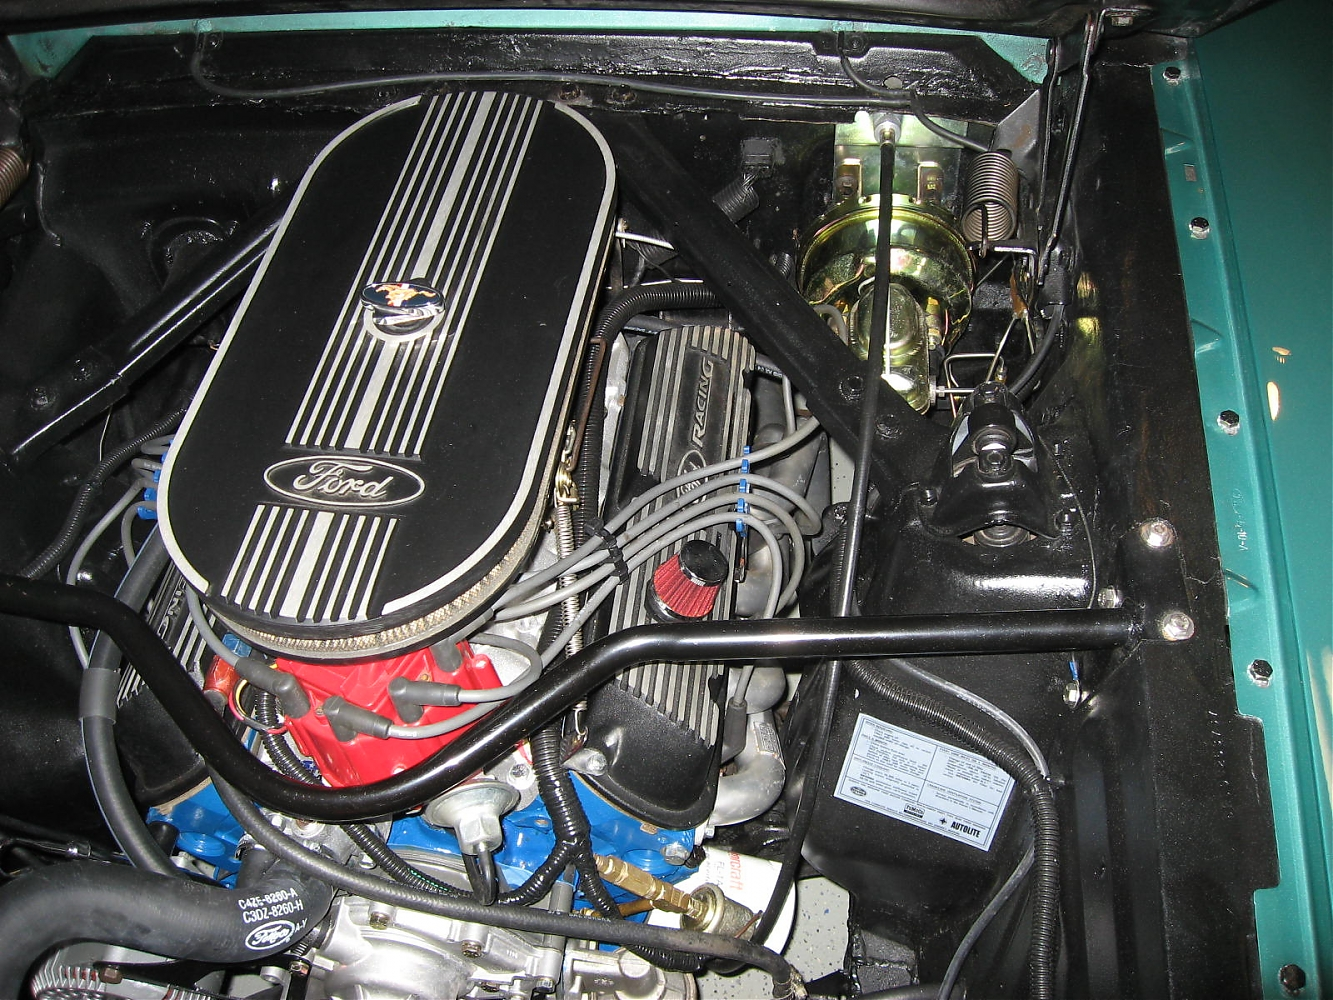 69 clutch cable conversion - Ford Muscle Forums : Ford